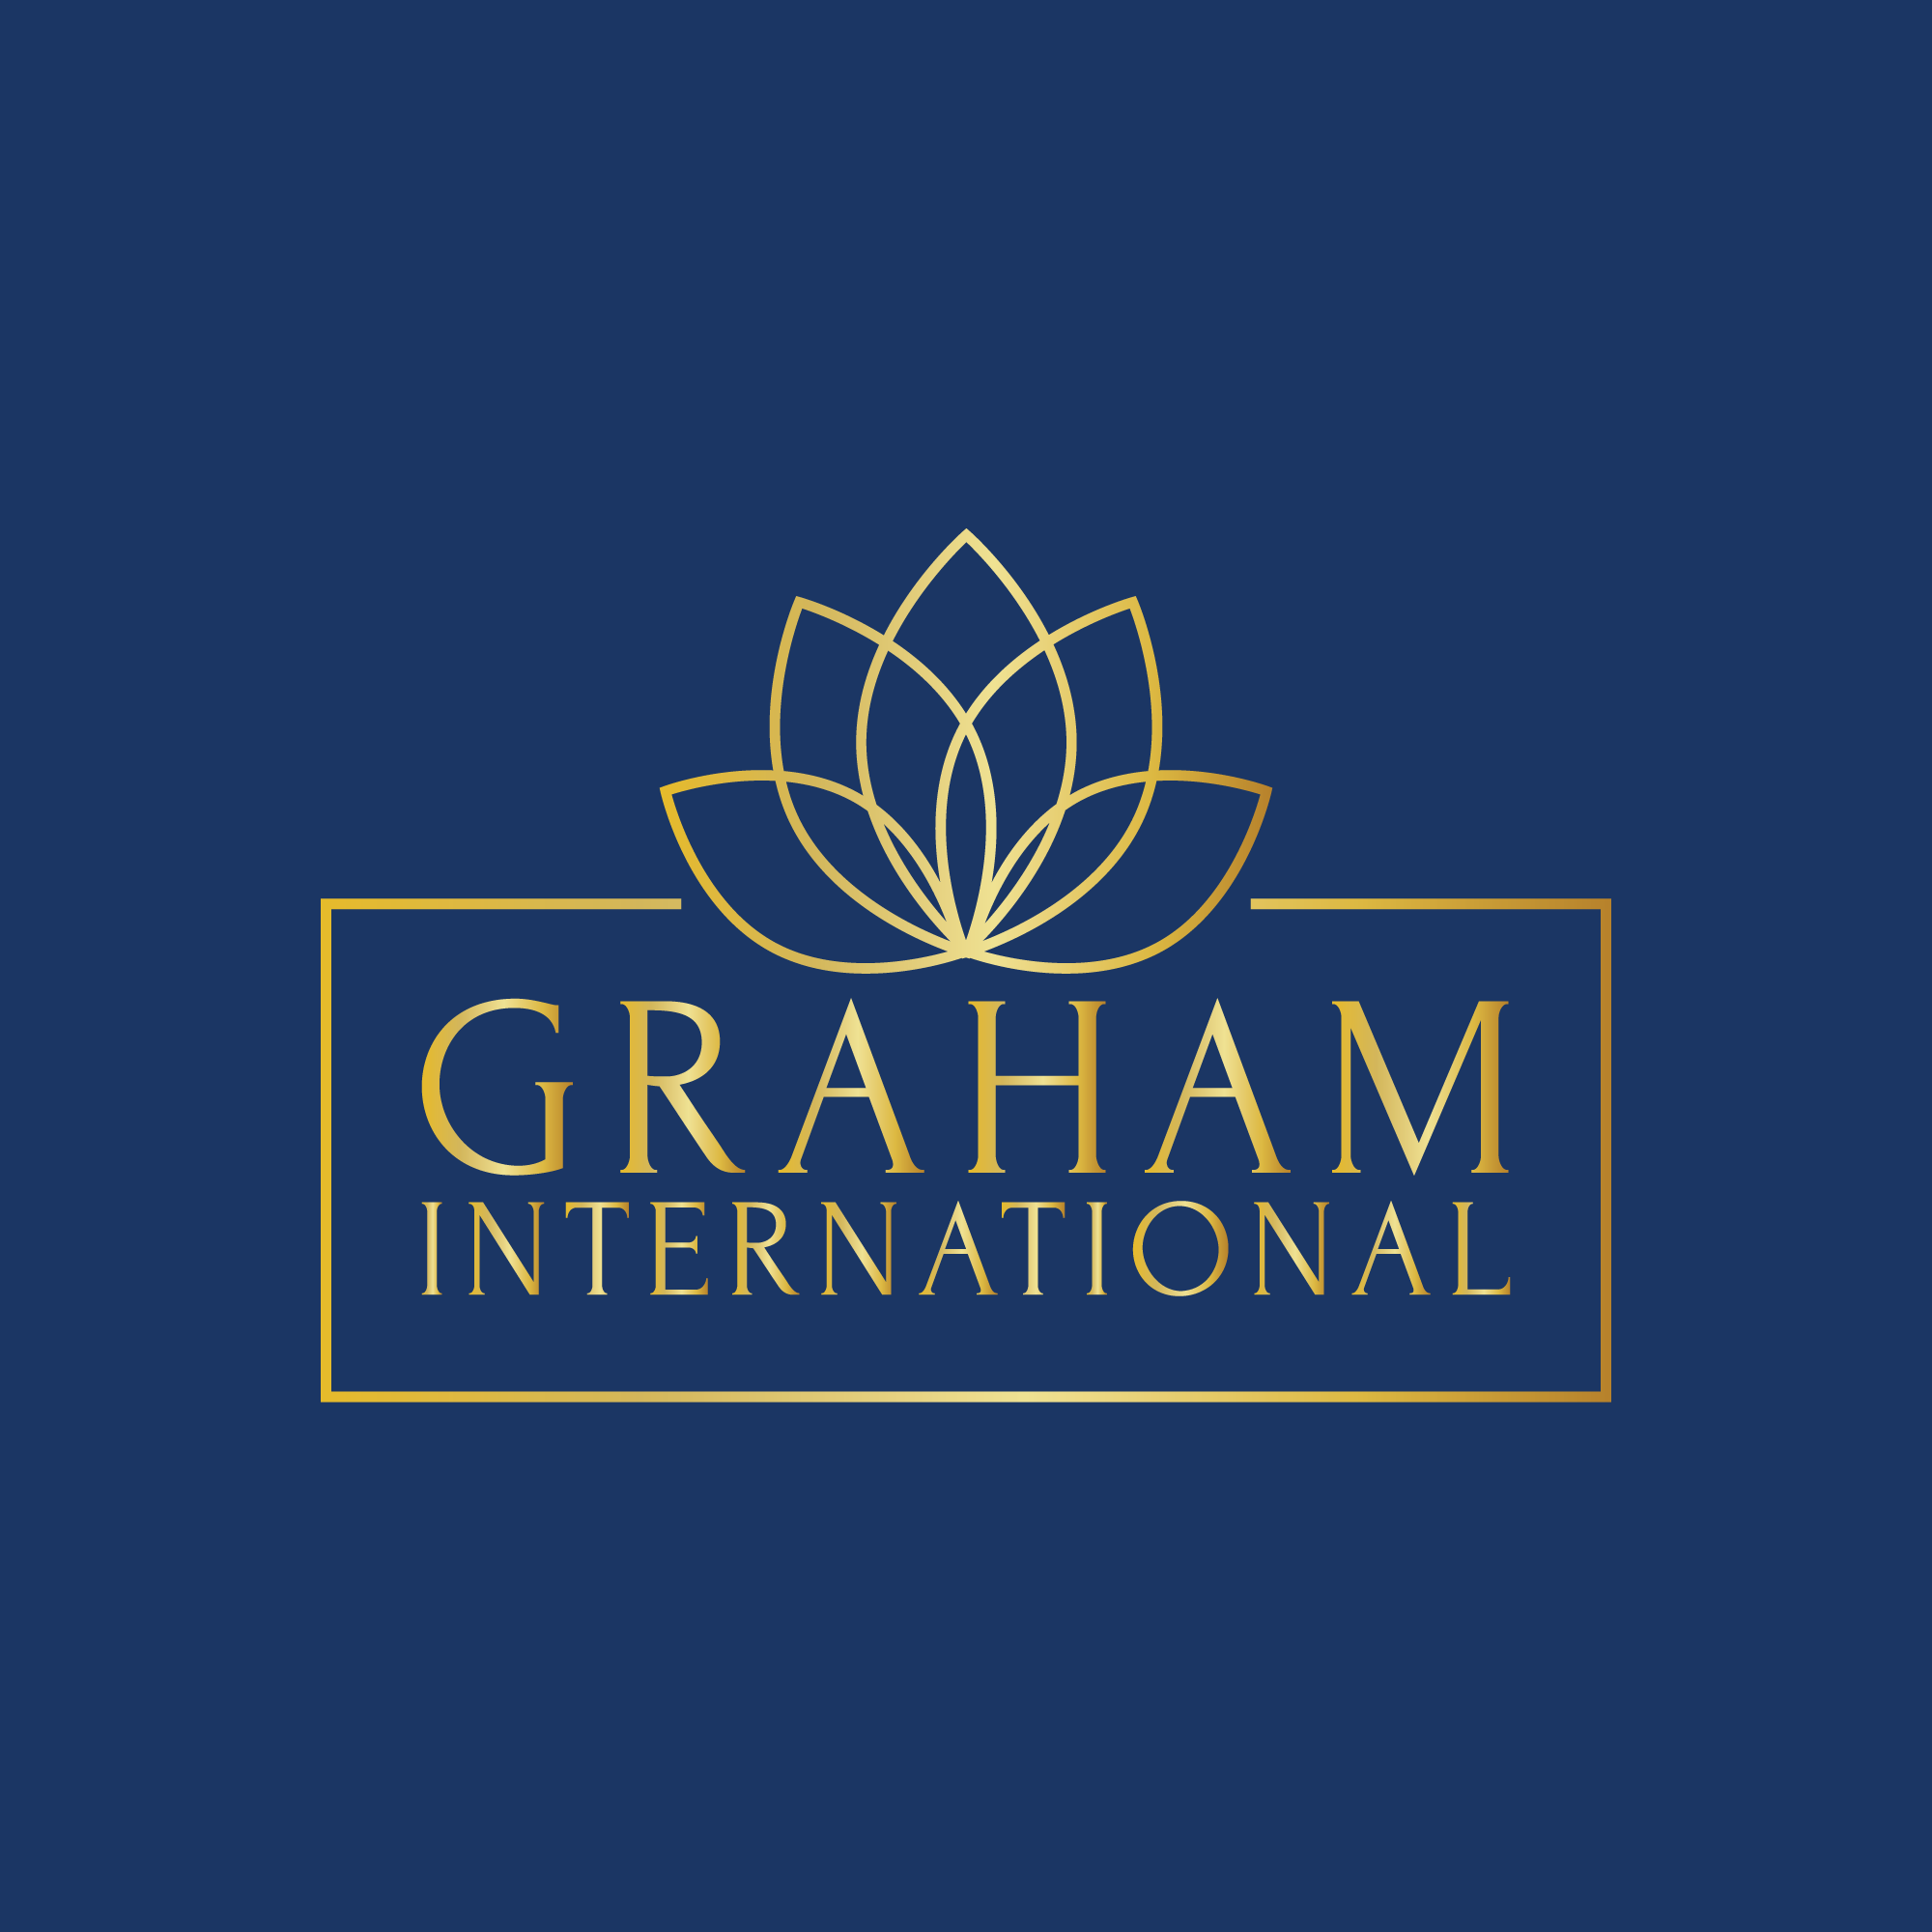 Graham International